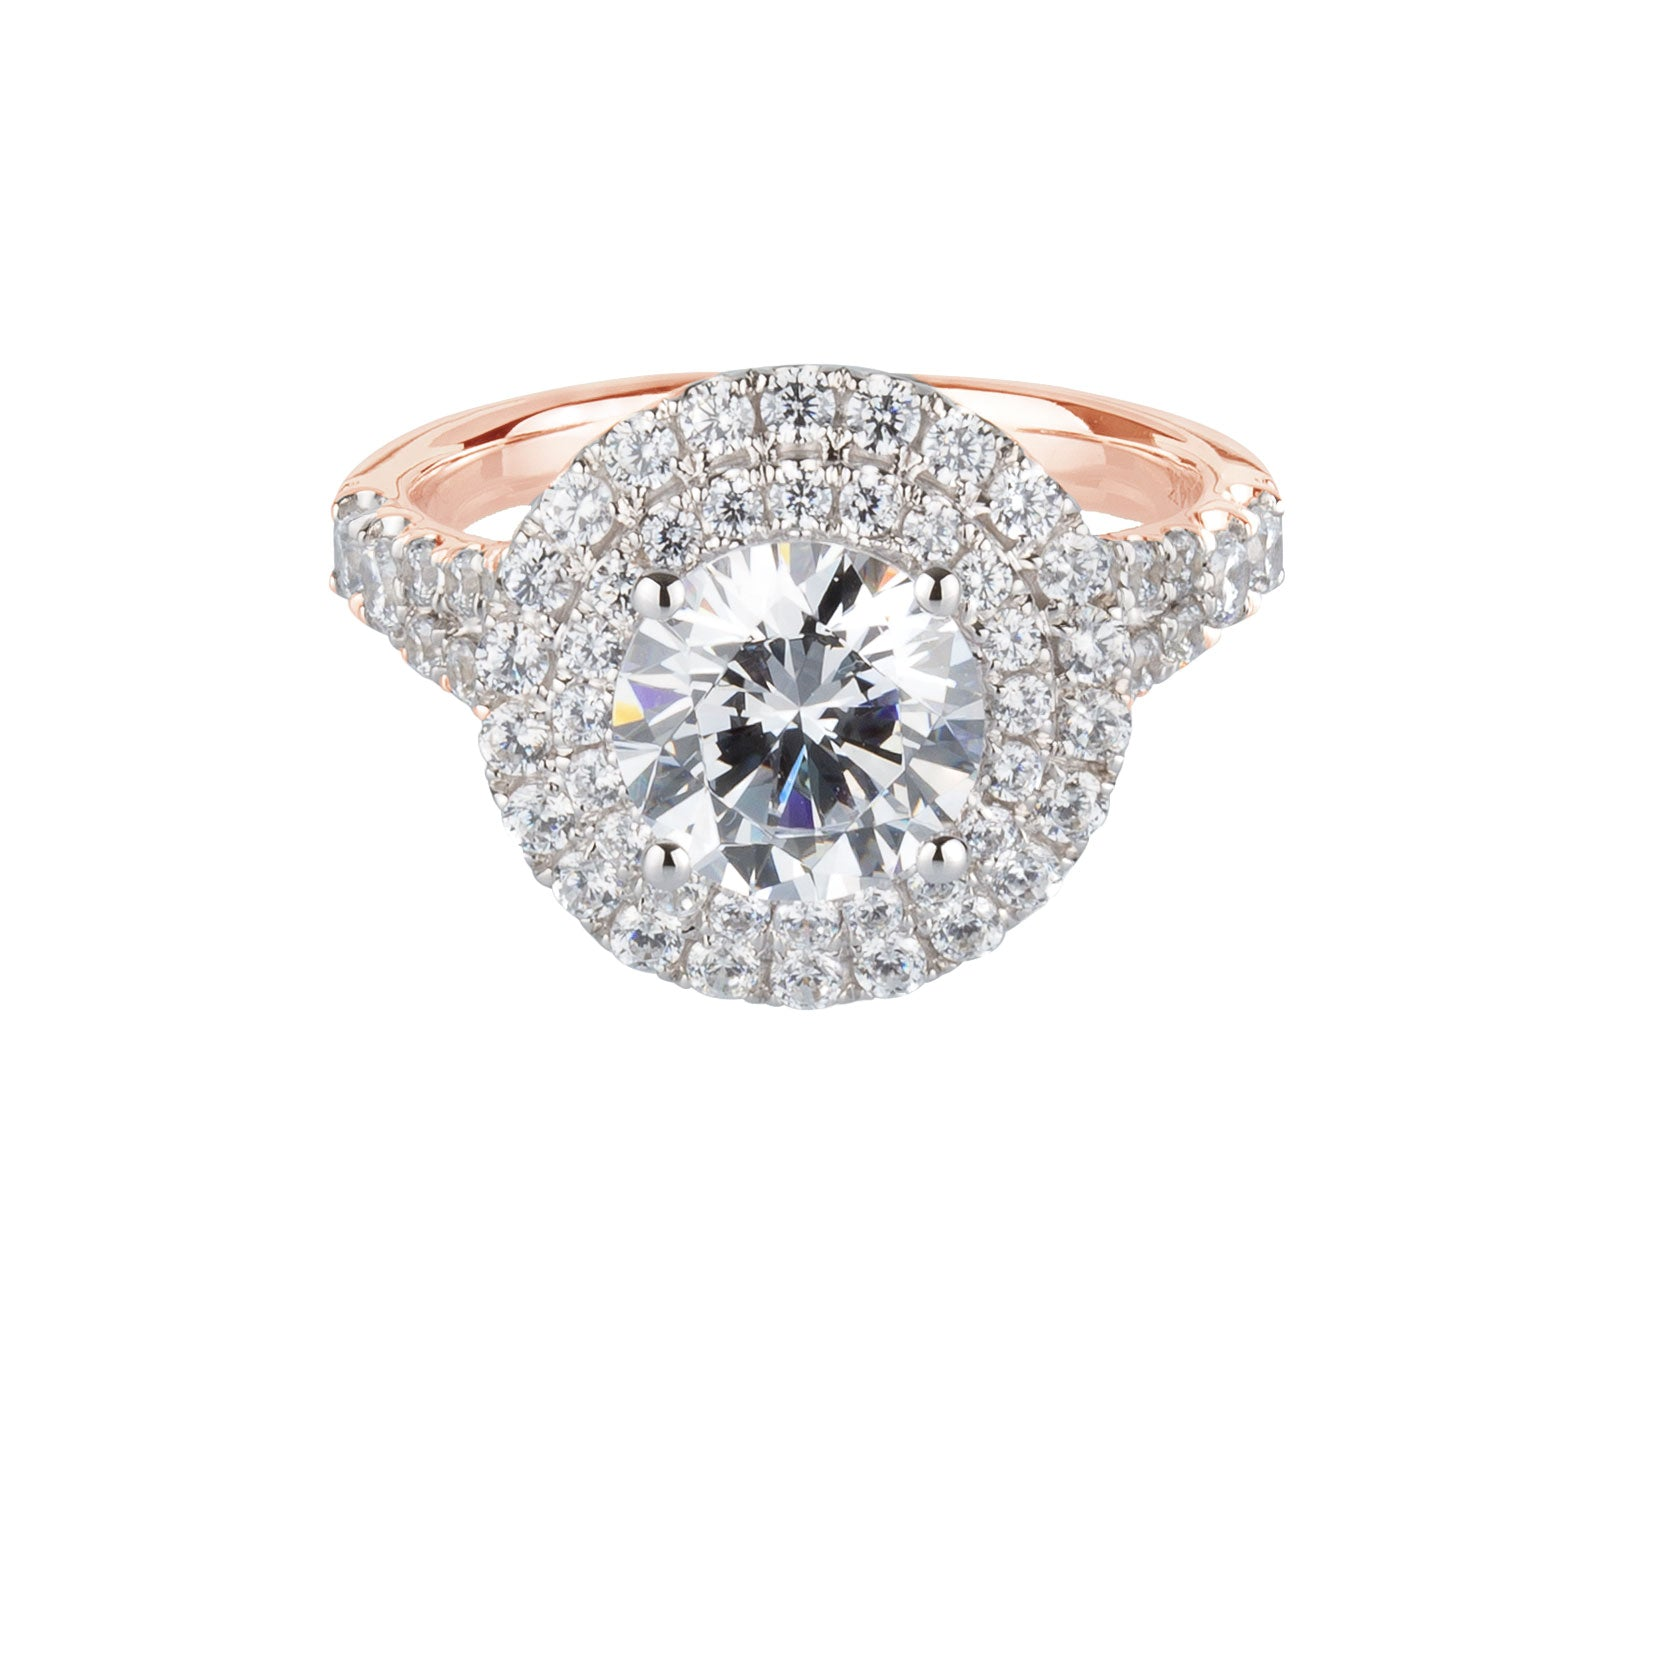 Juliet Round Brilliant Double Halo Engagement Ring in Rose Gold with White Gold setting